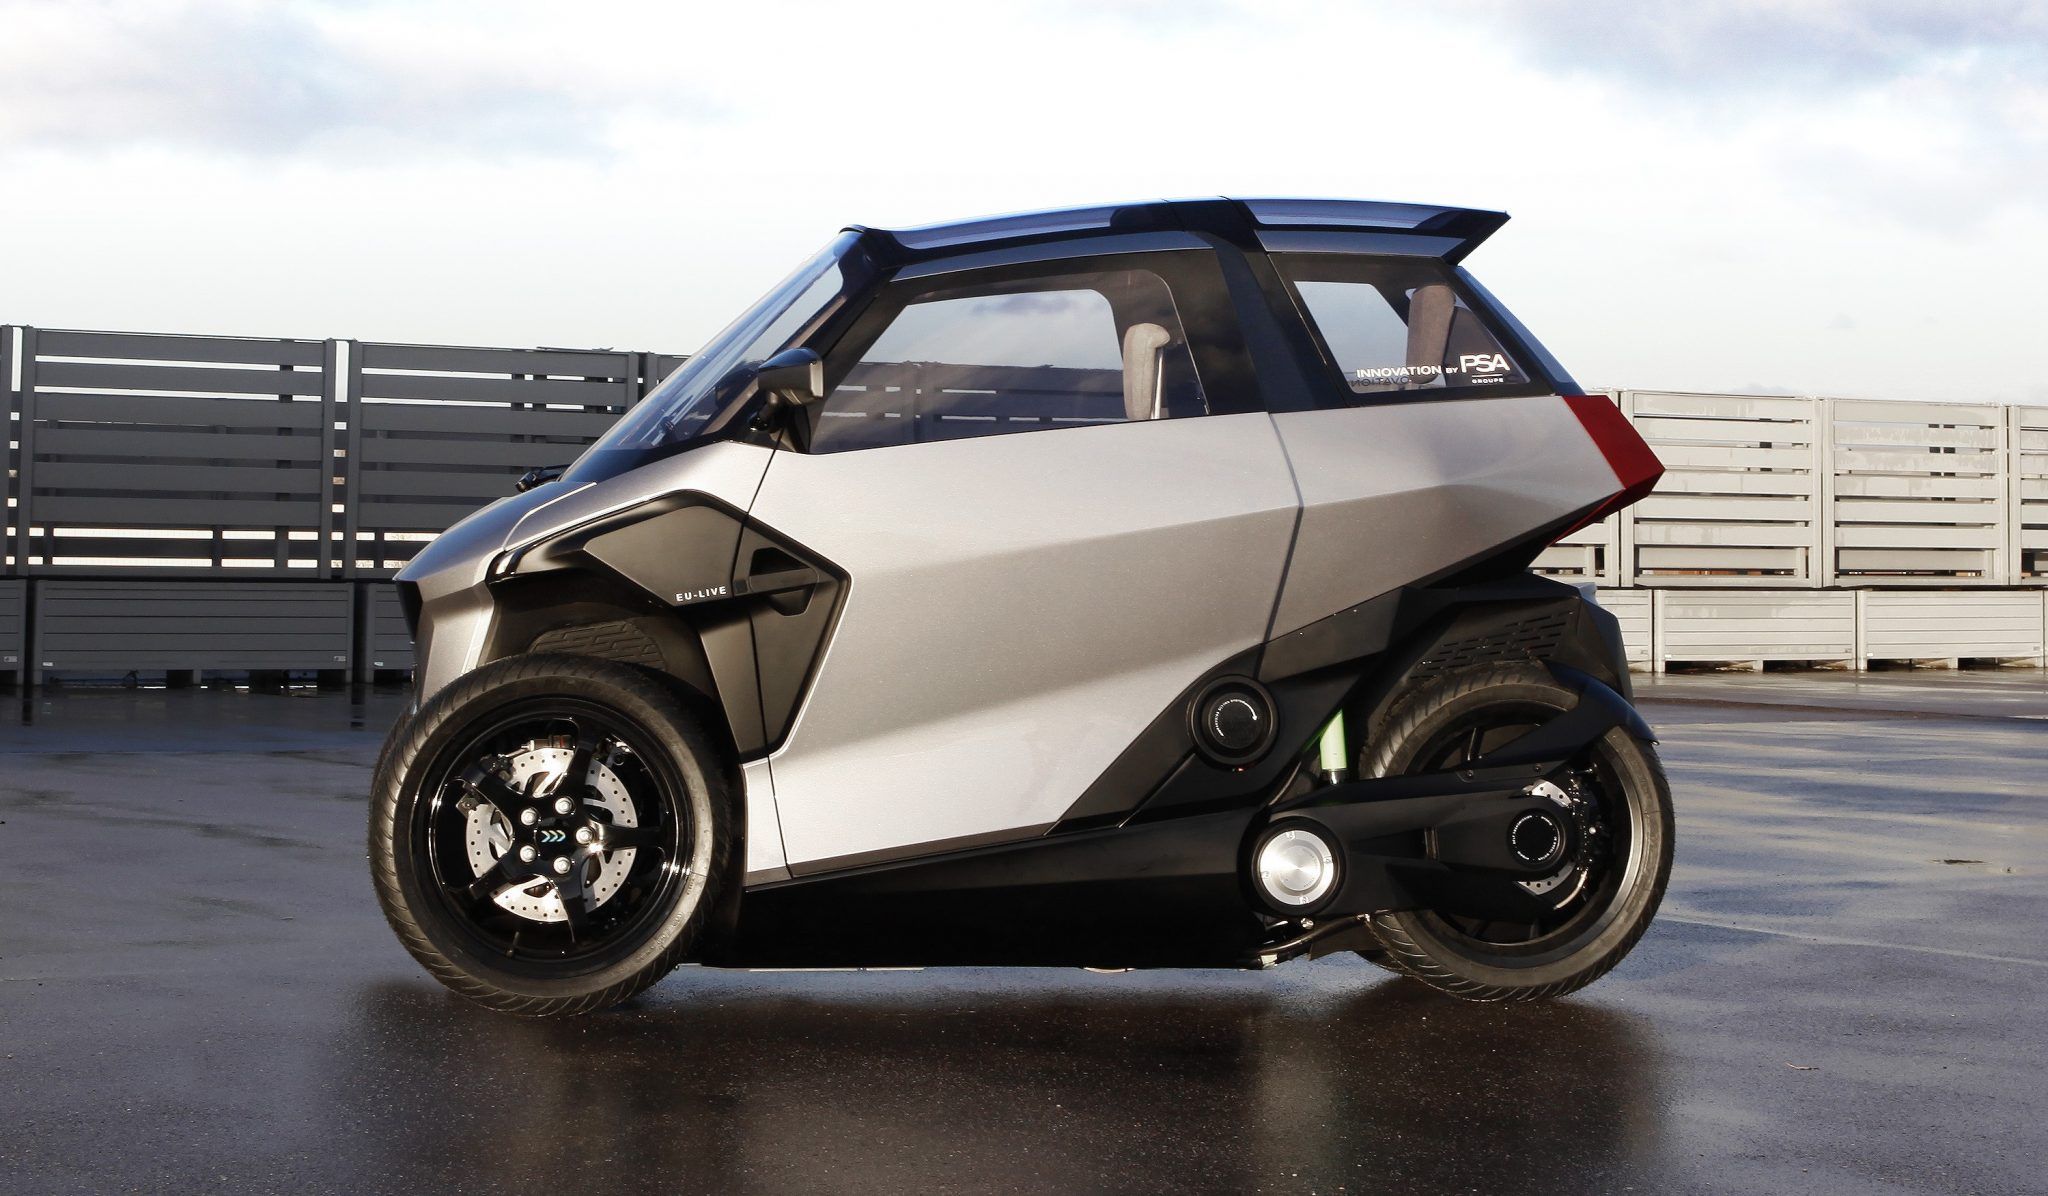 Peugeot presents 4-wheeled, PHEV scooter - as easy to ride